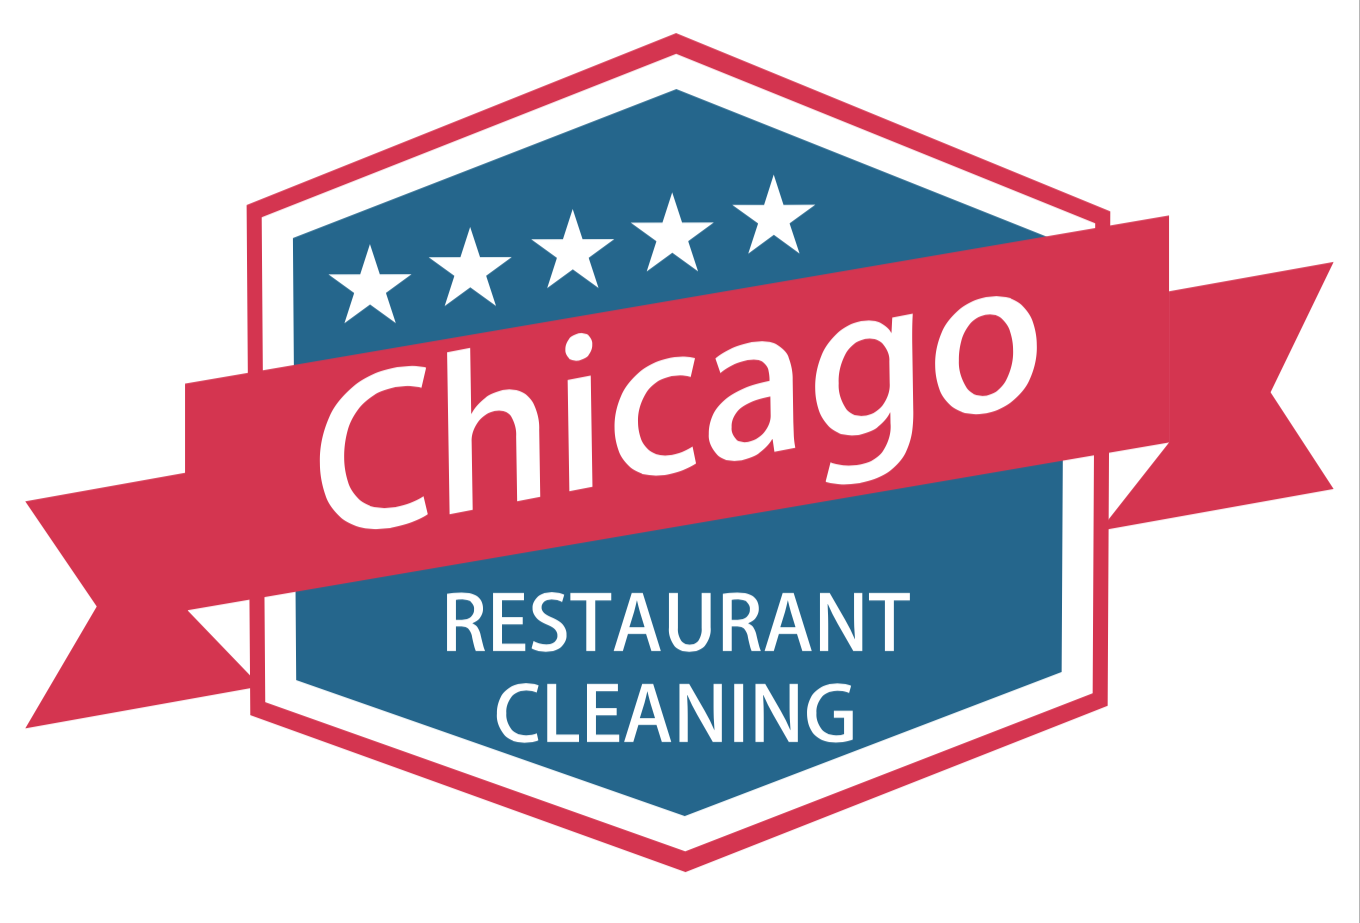 restaurant cleanliness Commercial cleaning for restaurants when you hire us to clean your restaurant, we'll: dust flat surfaces – windowsills, baseboards, kickboards under counters.